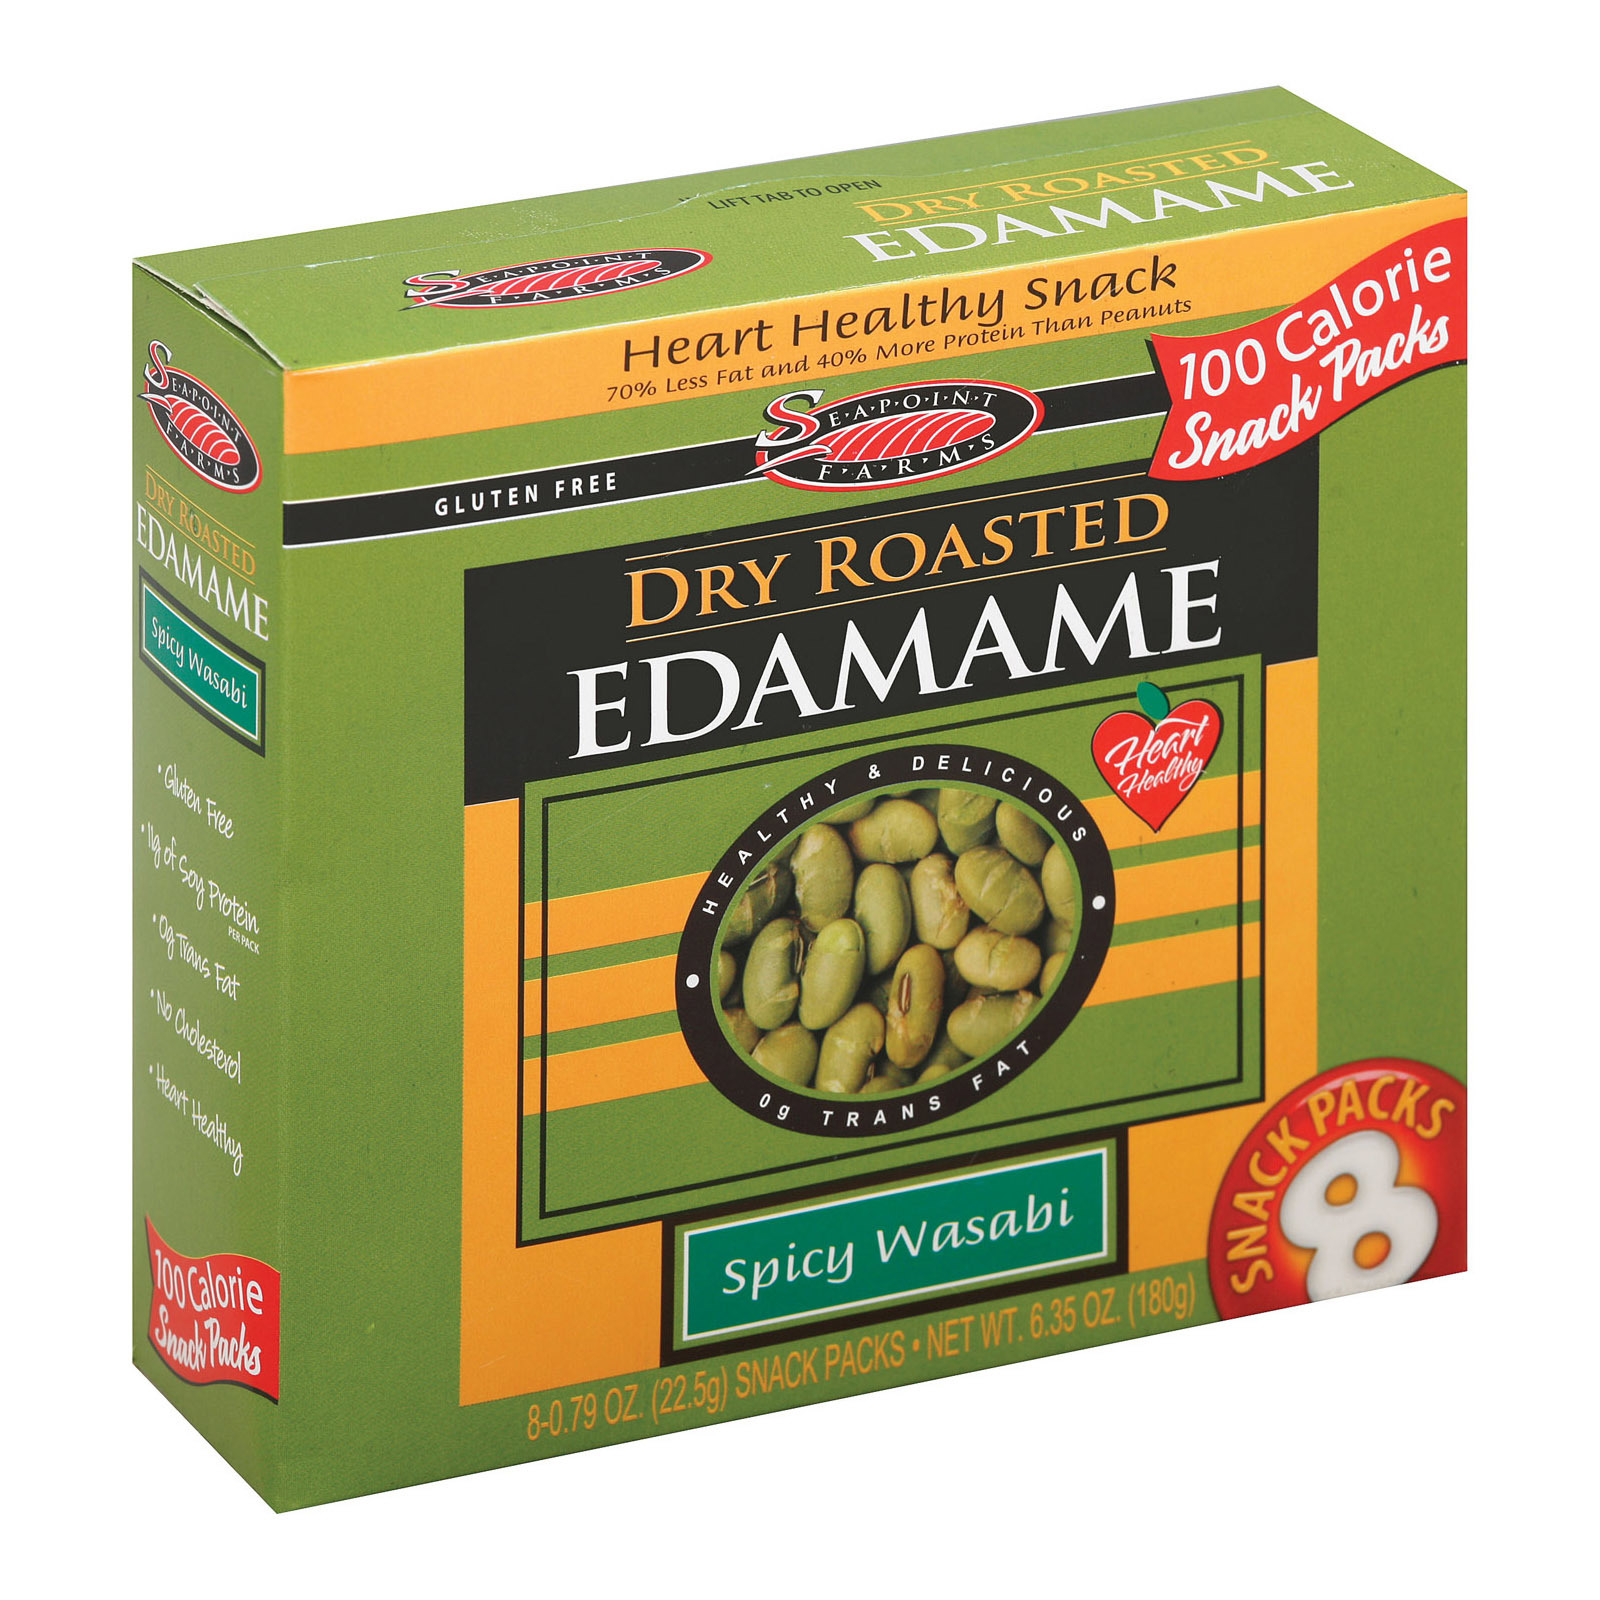 Seapoint Farms Dry Roasted Edamame - Spicy Wasabi - Case of 12 - 0.79 oz.